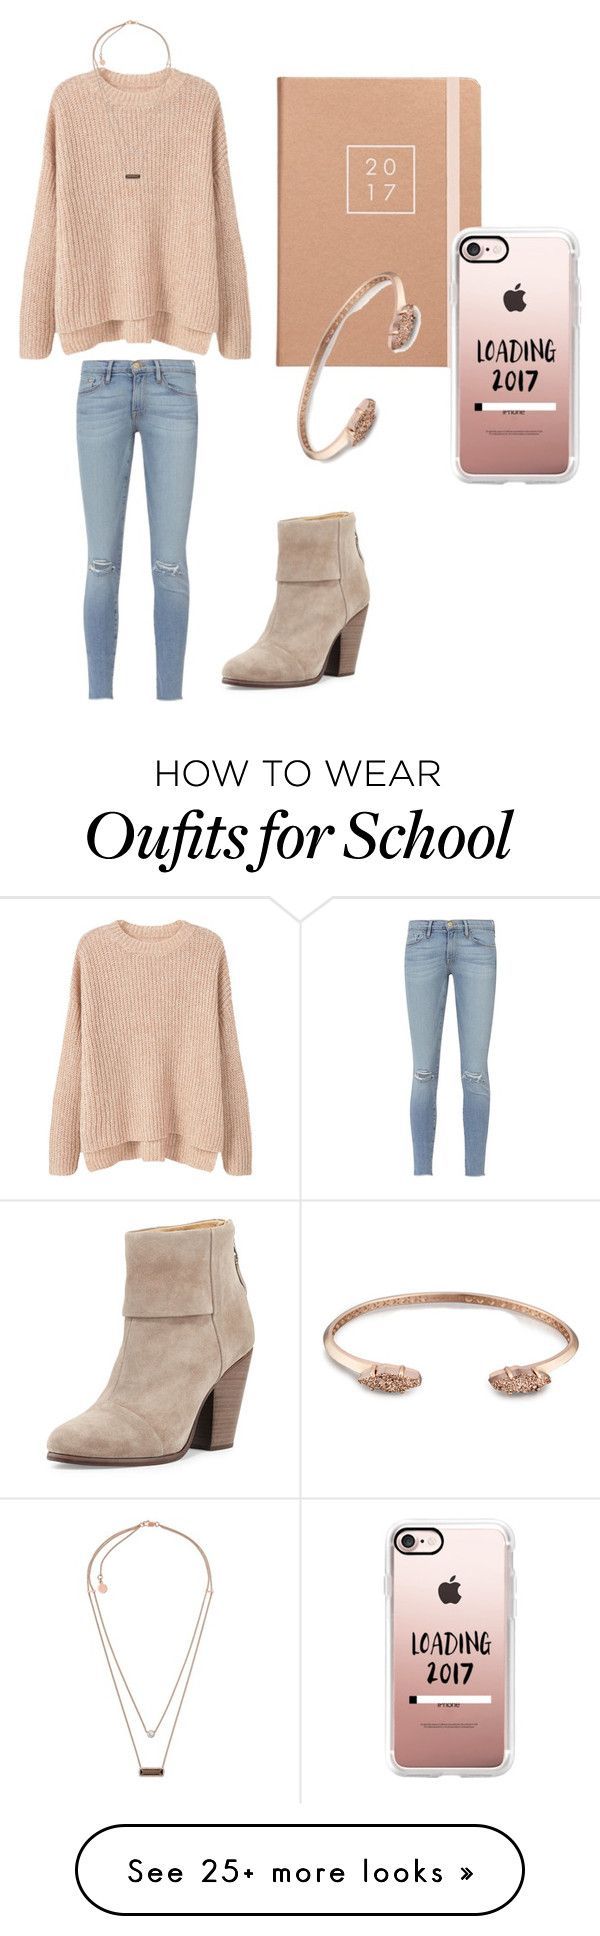 """School preparation"" by sarahfohlen on Polyvore featuring Casetify, MANGO, Frame, Michael Kors, rag & bone, Kendra Scott, Winter and 2k17"